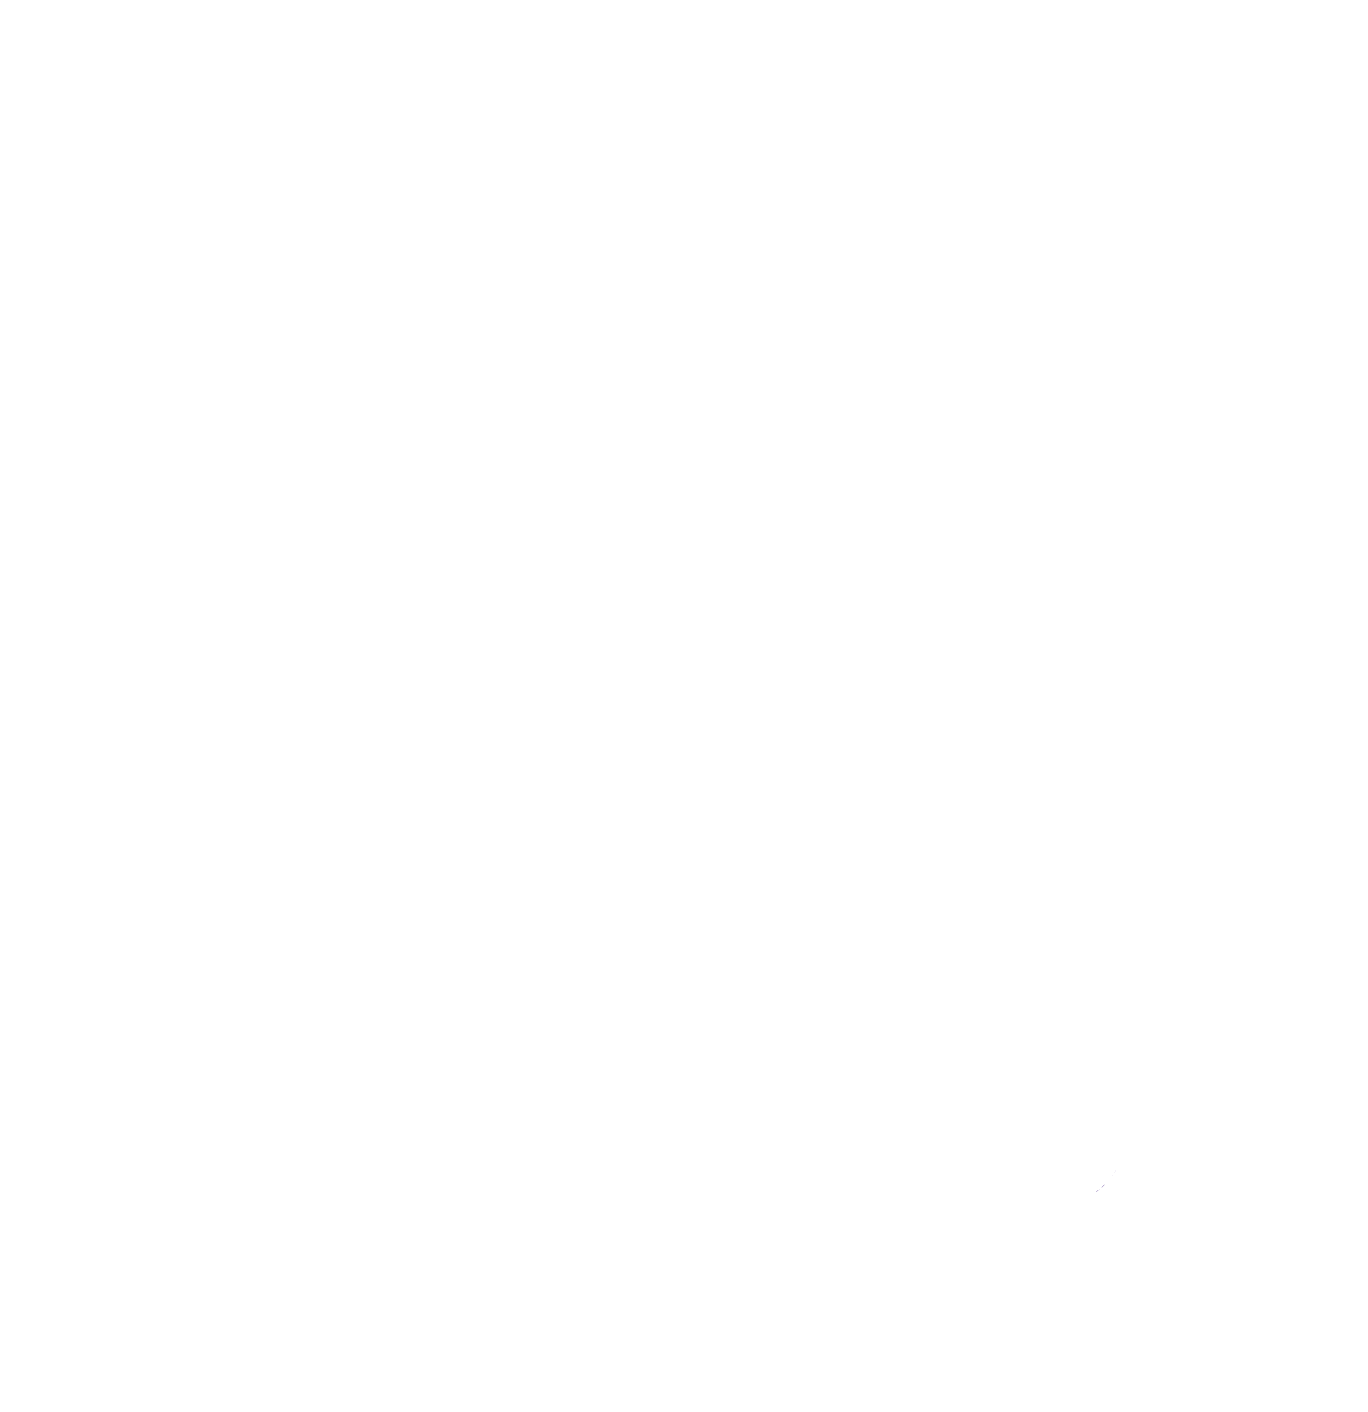 Copper Trail Brewing Co.